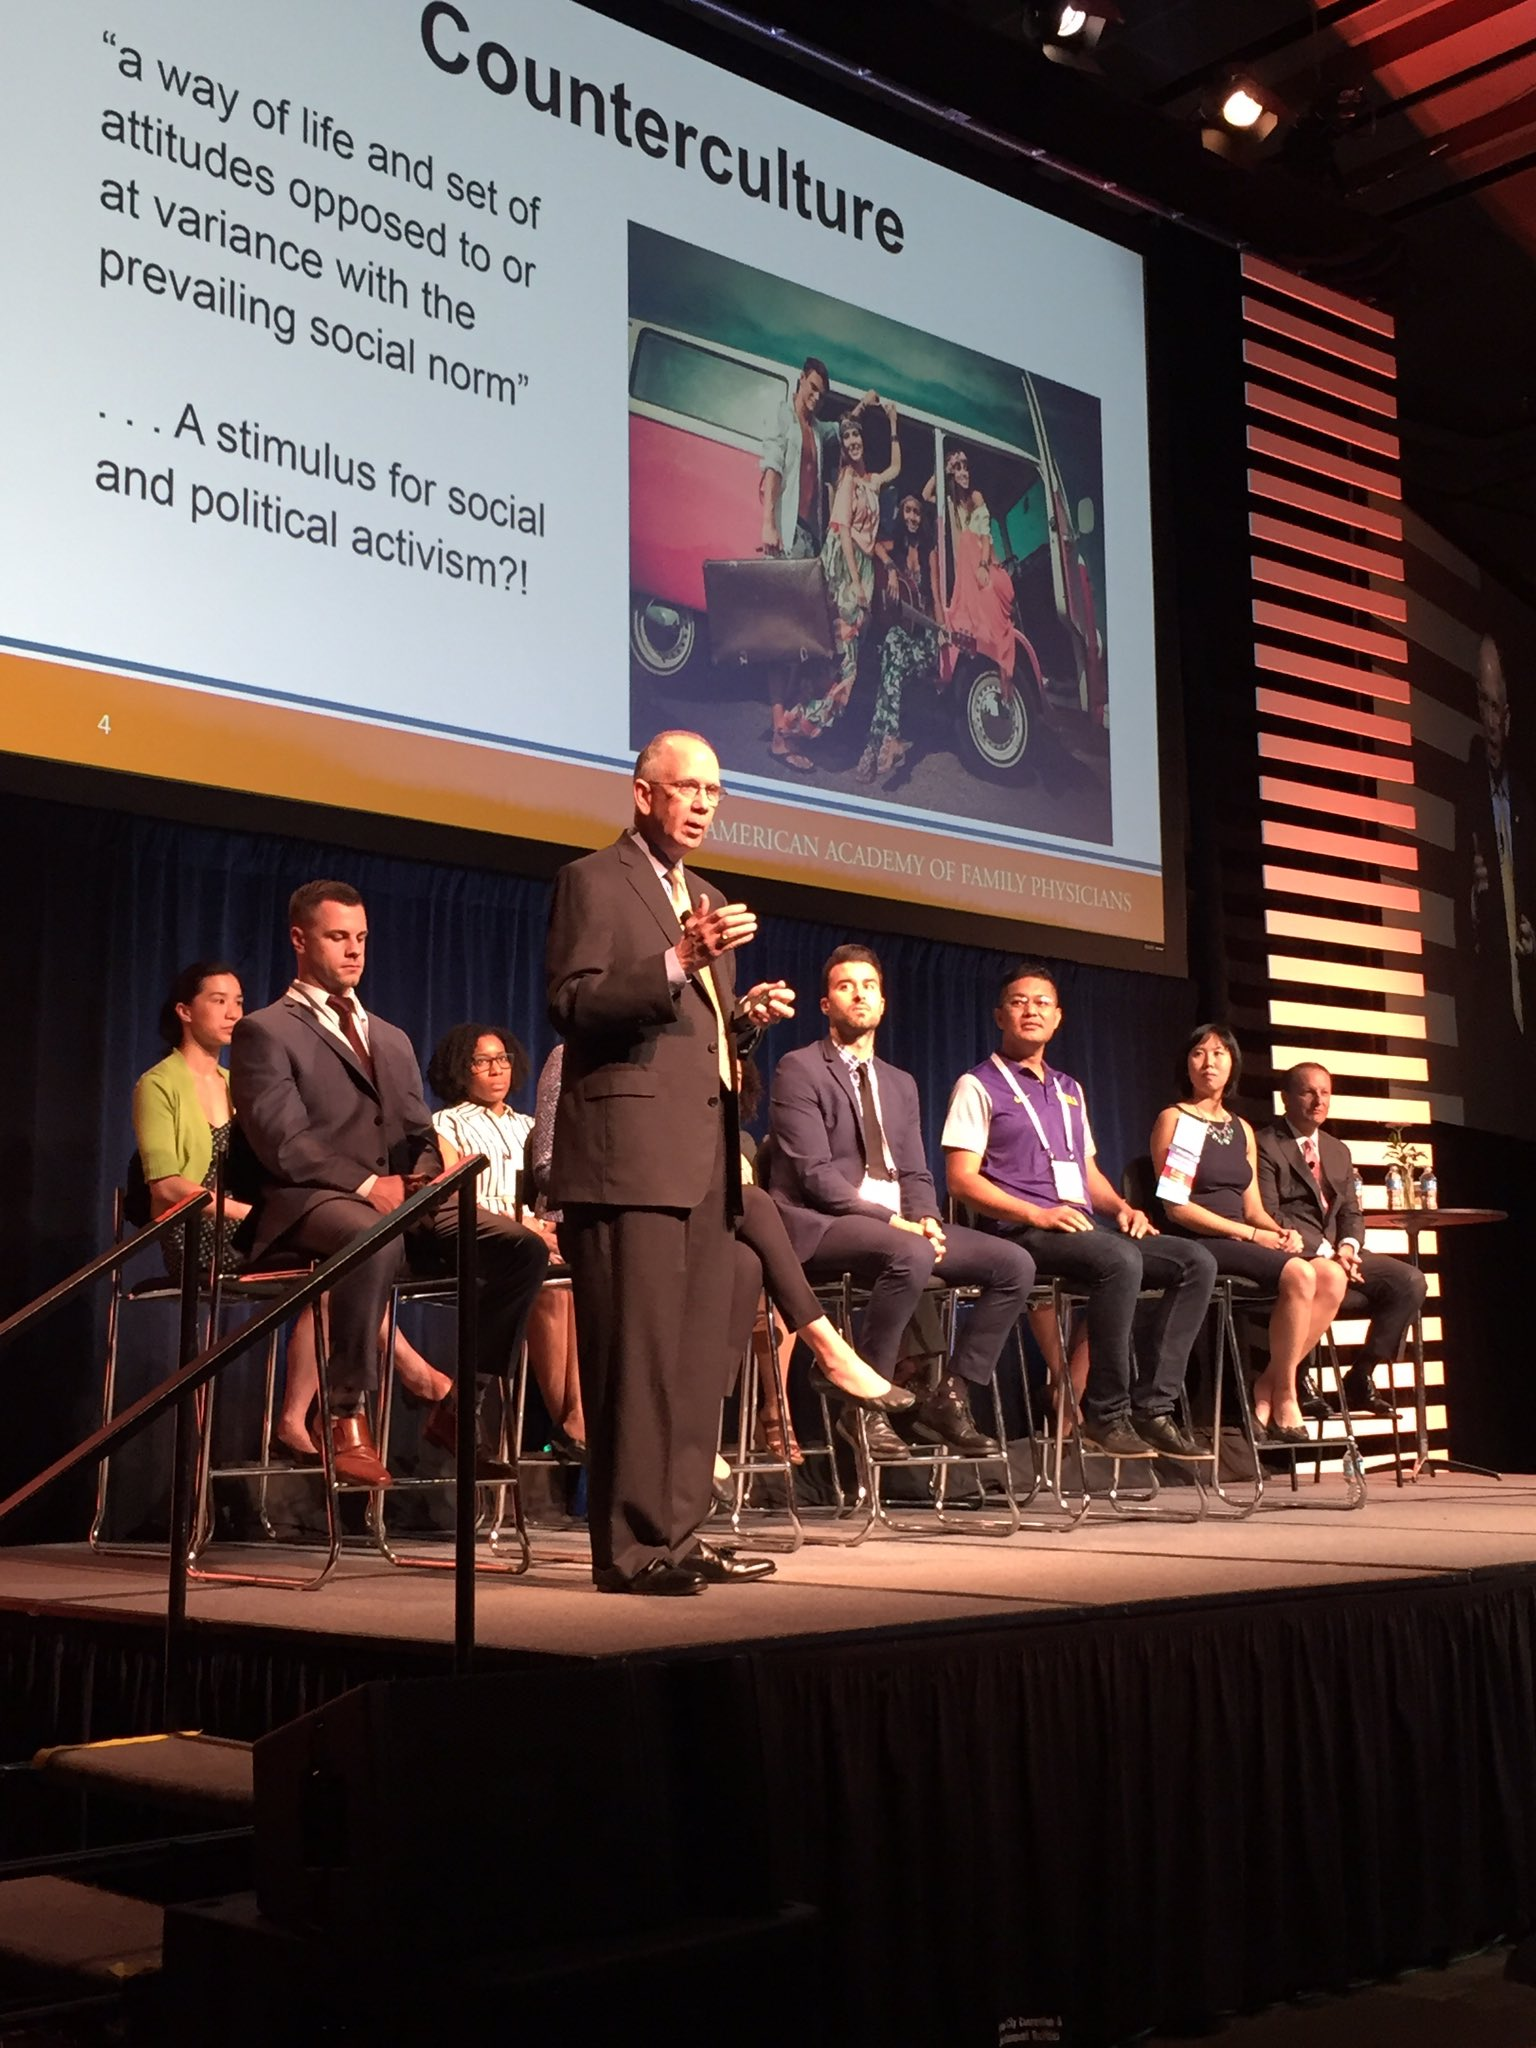 .@dhenleyceo asks #AAFPNC have we been inculcated into the system? Are we still feisty? https://t.co/lWkeTealVe